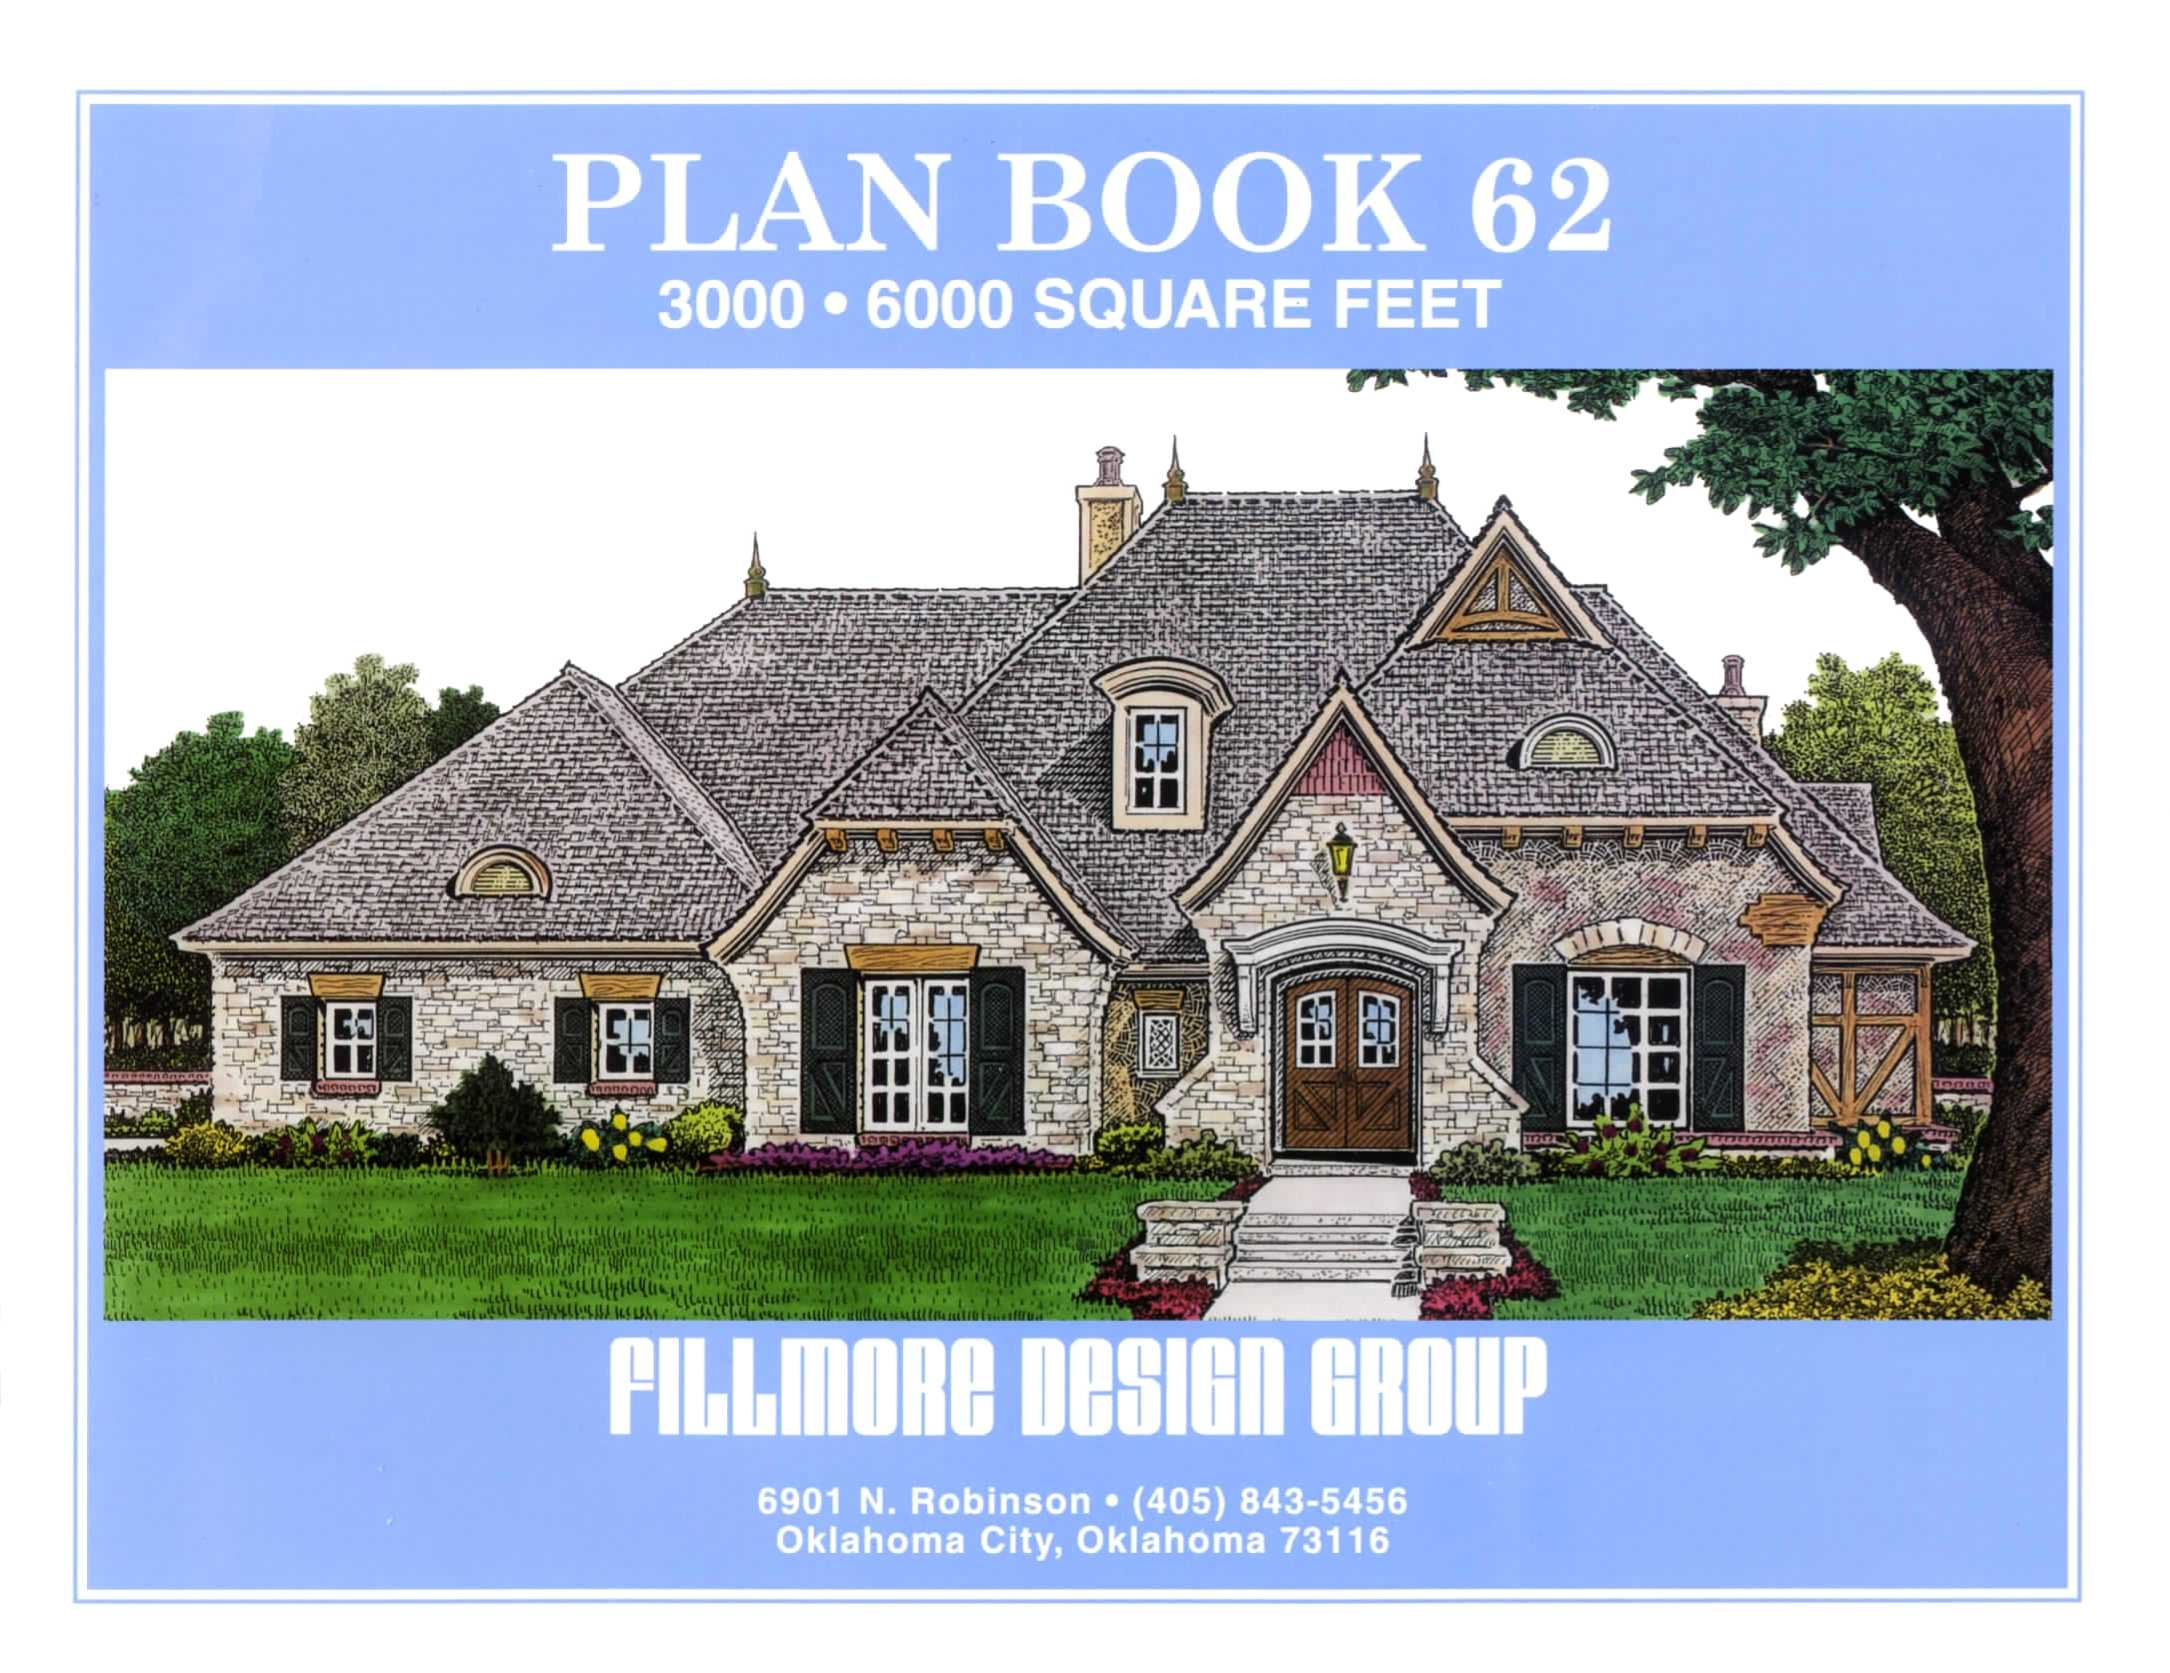 Plan book 62 front cover fillmore chambers design group - House design book ...